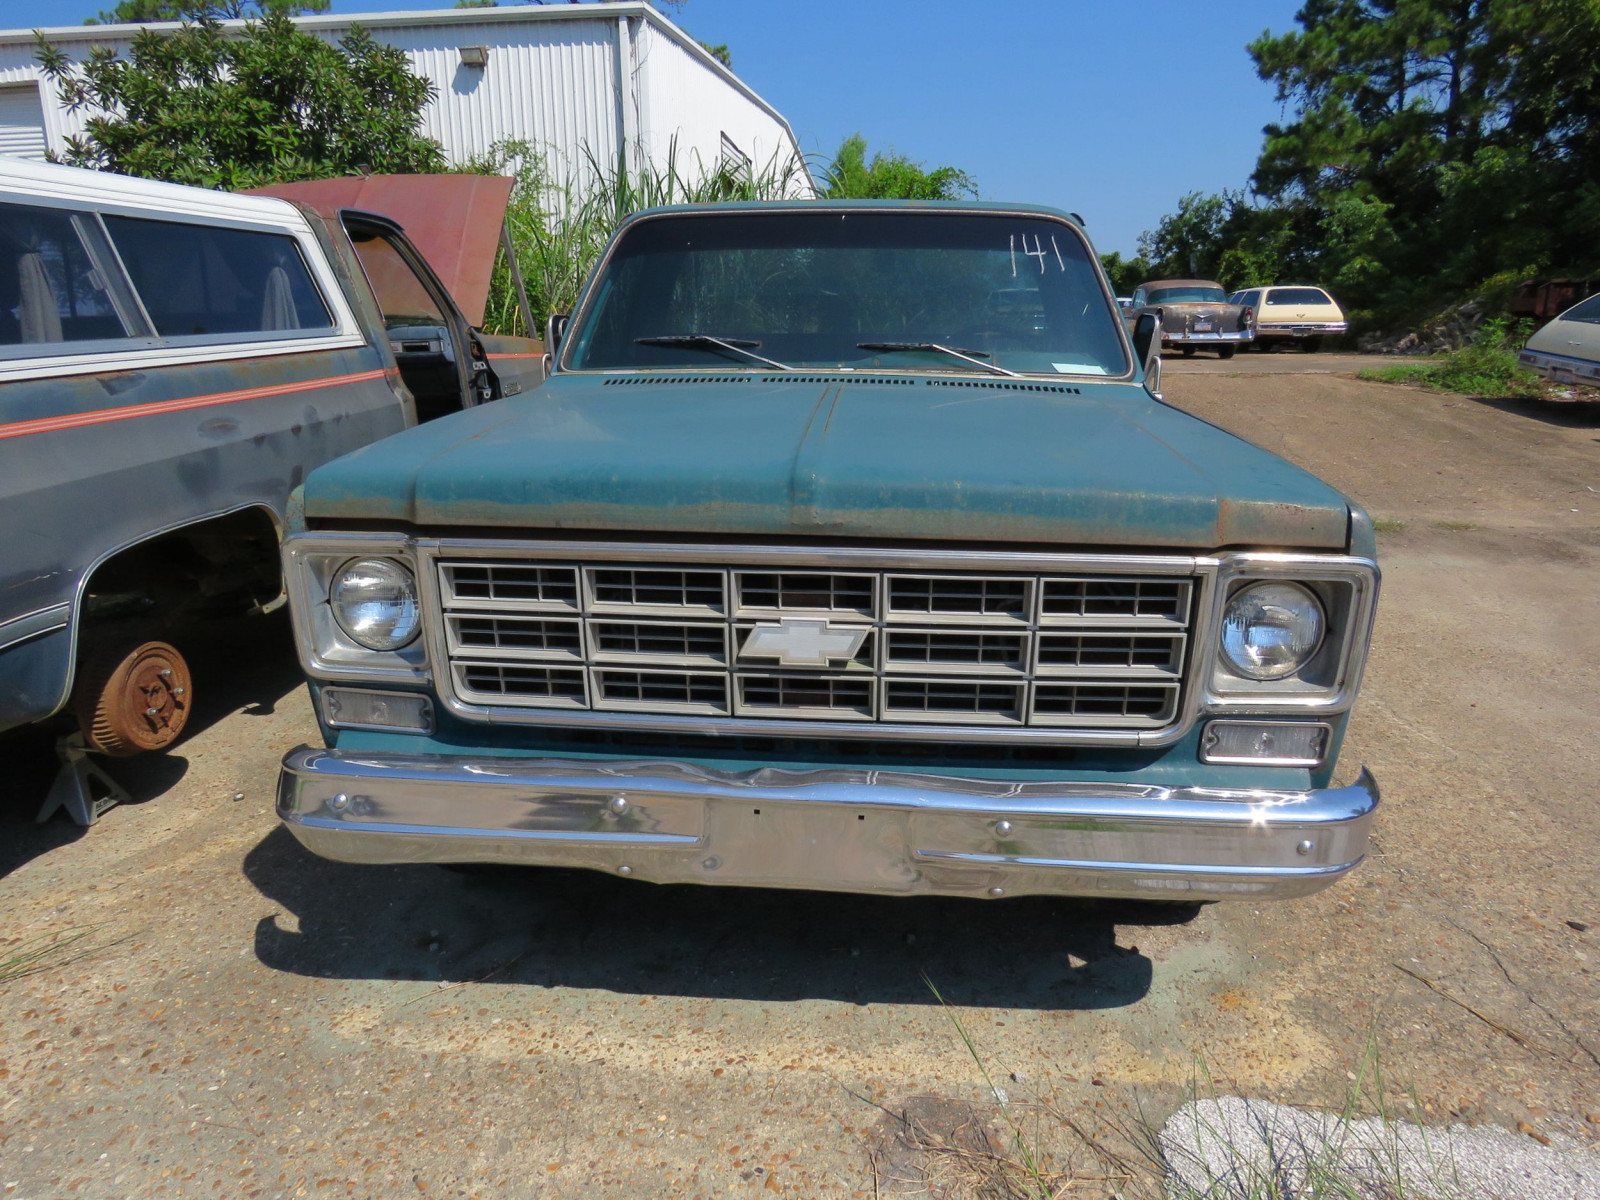 1979 Chevrolet Big 10 1/2 ton Pickup - Image 2